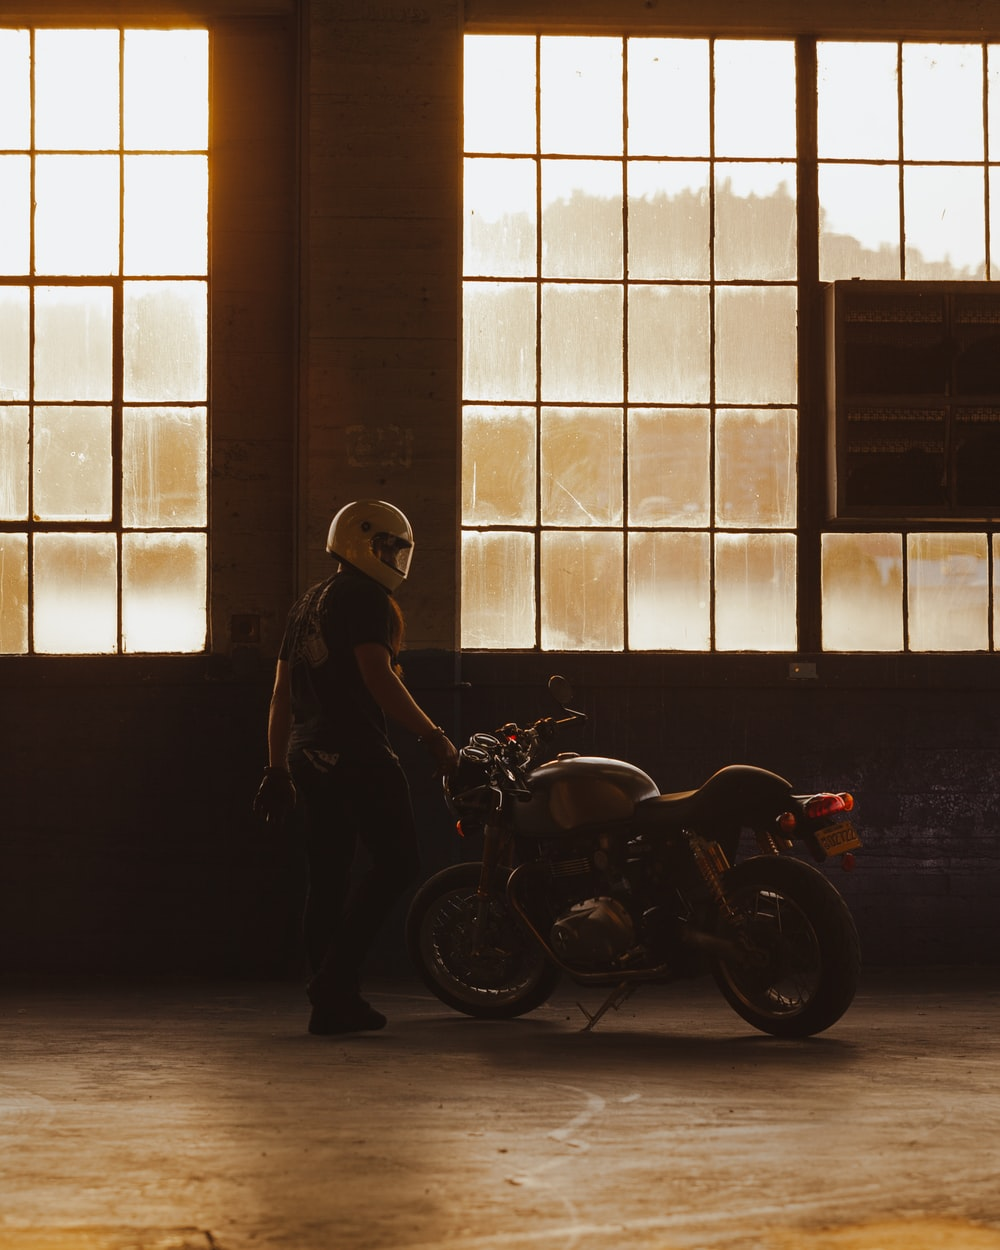 woman in black coat standing beside motorcycle